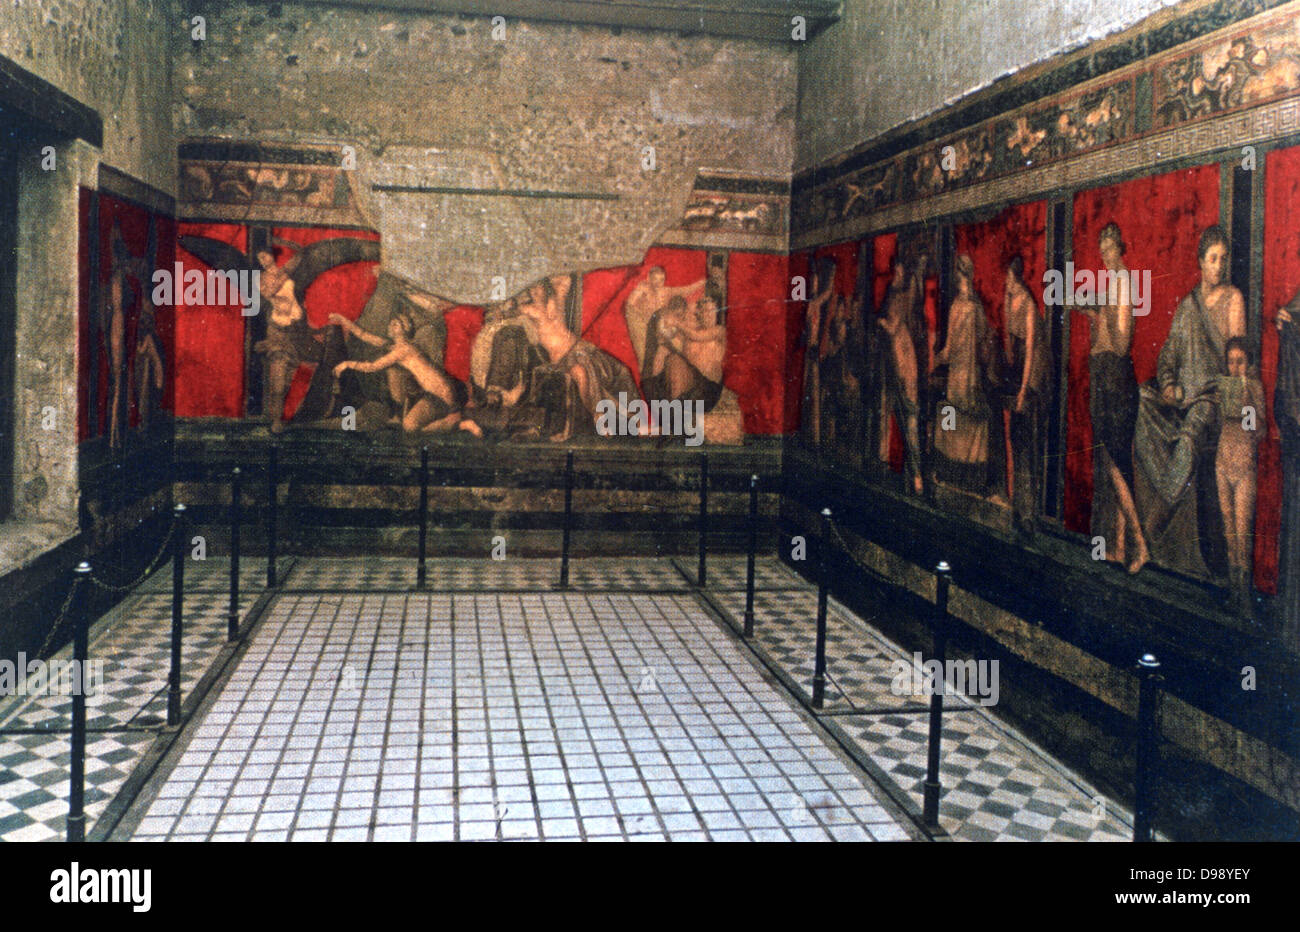 Ritual frescoes in the Initiation Chamber, Villa of the Mysteries, Pompei, Italy. Ancient Roman - Stock Image